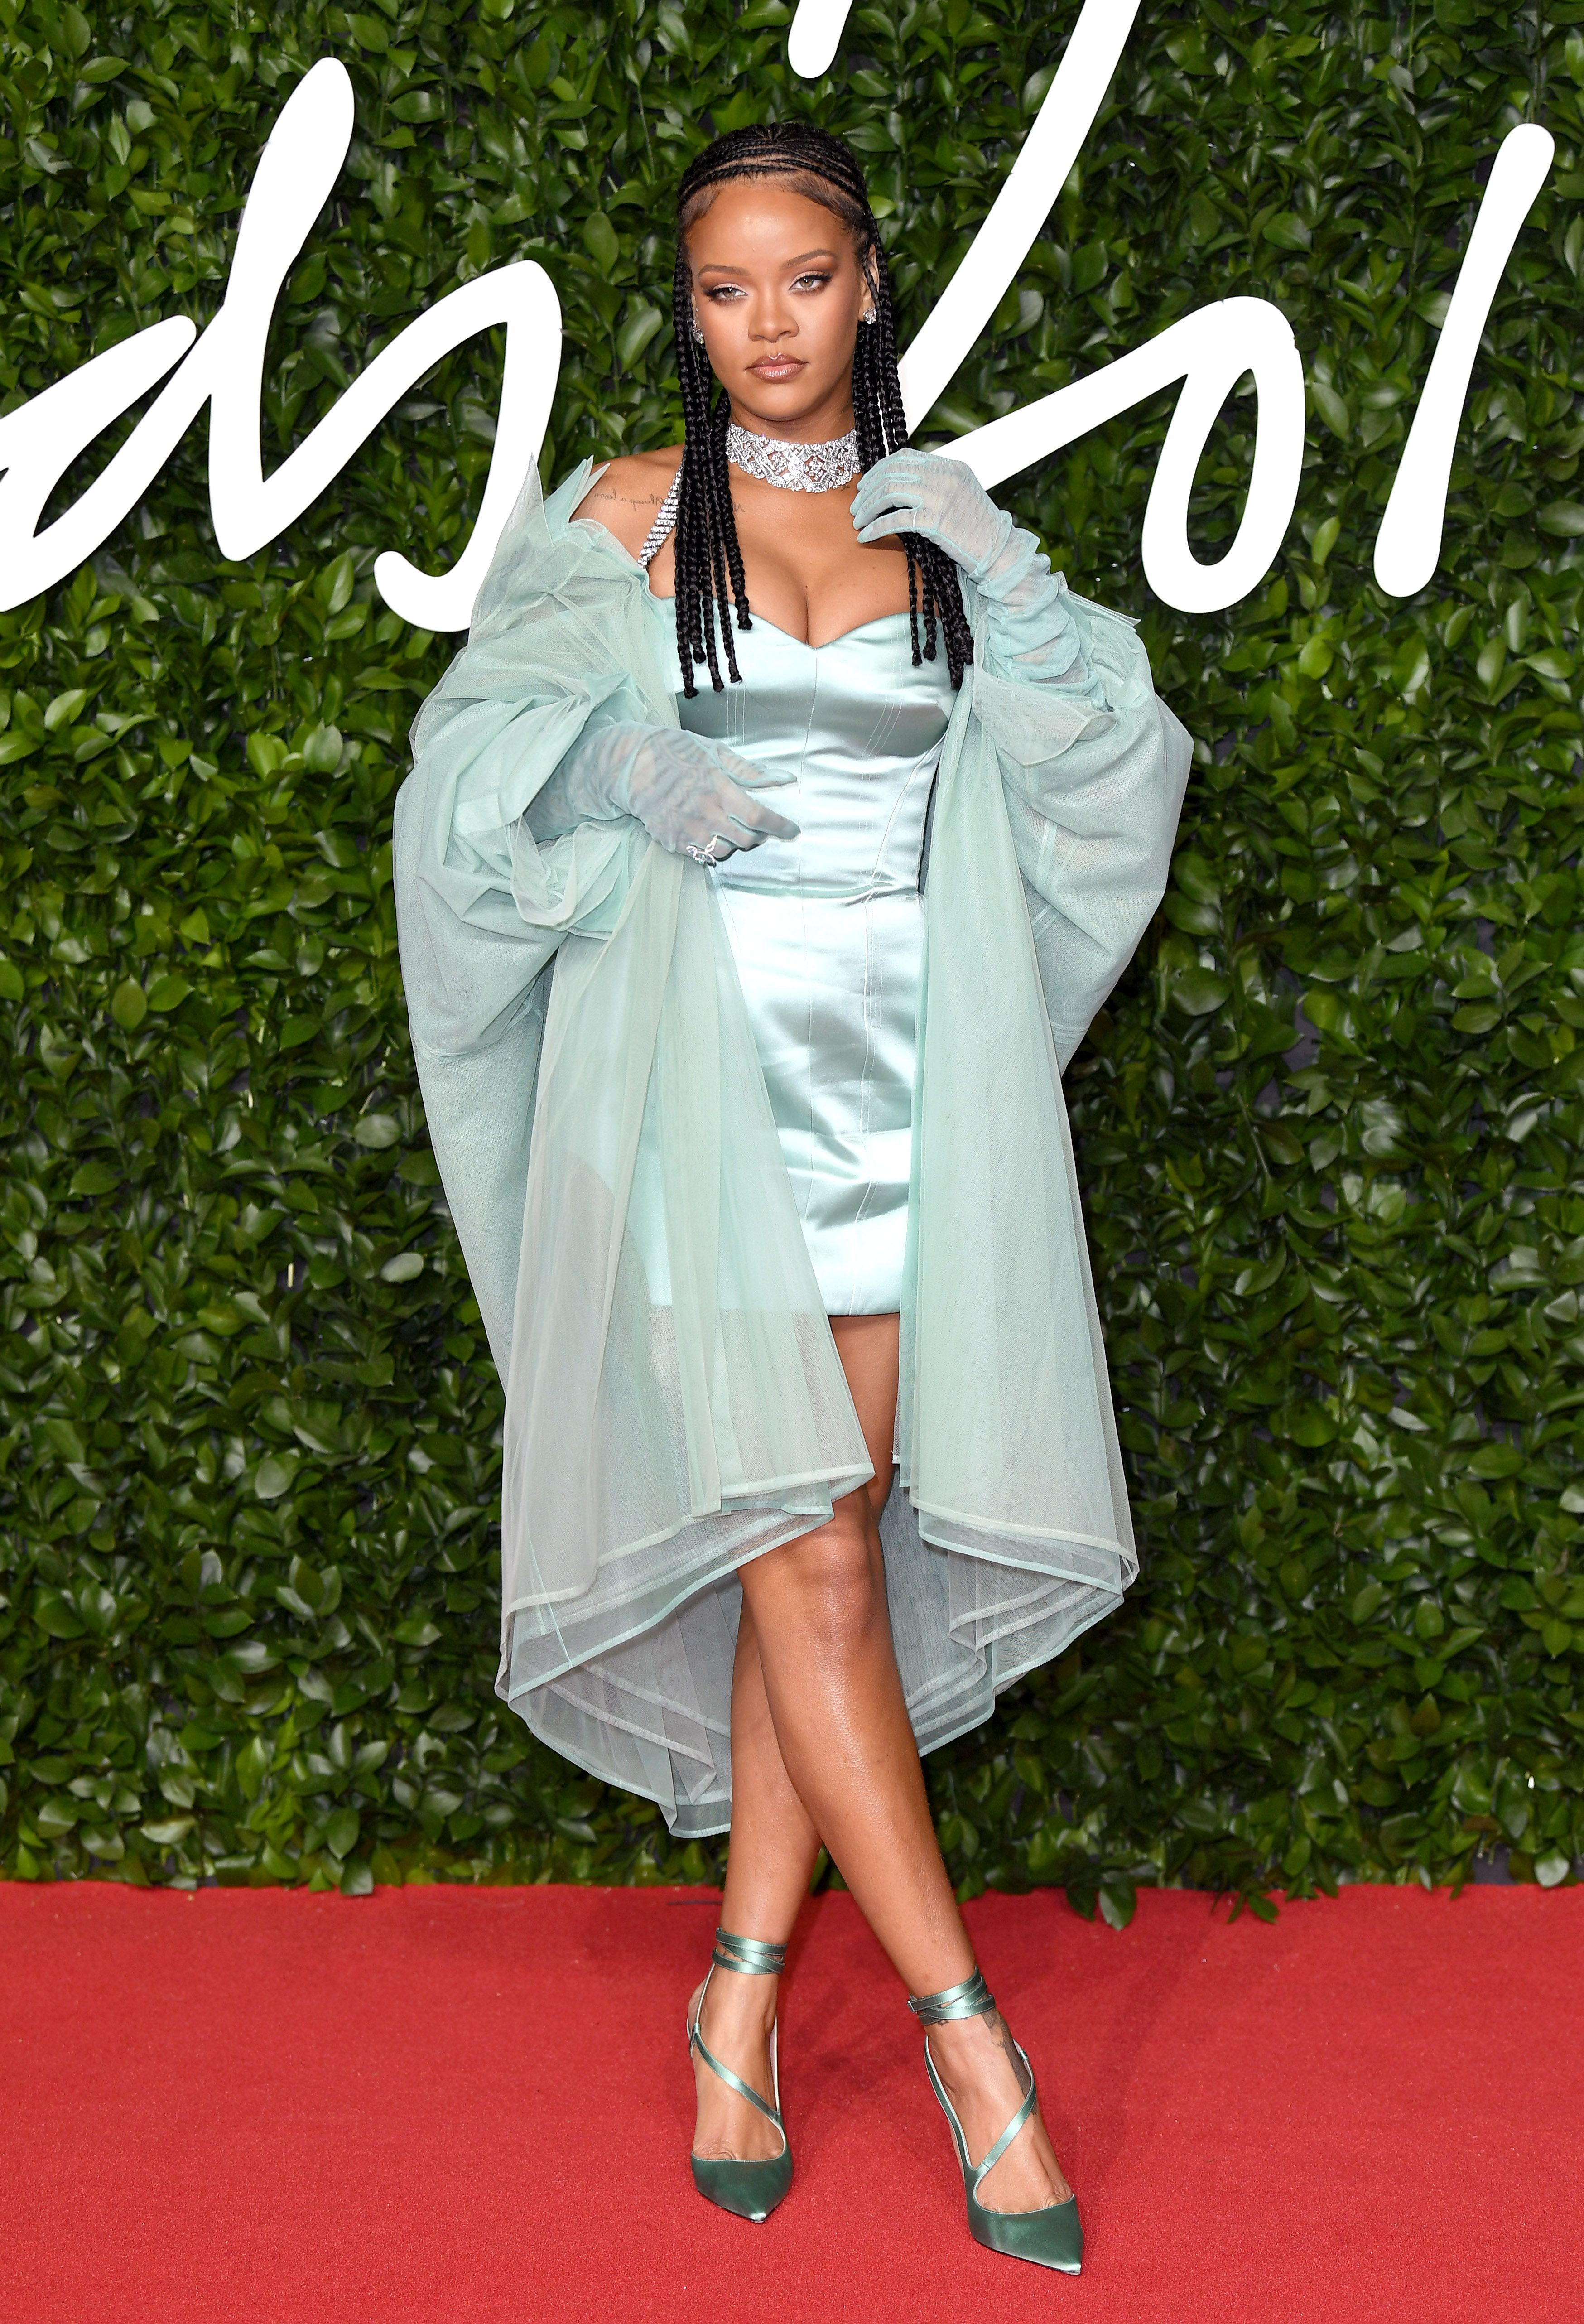 Best Dressed: The Week In Outfits